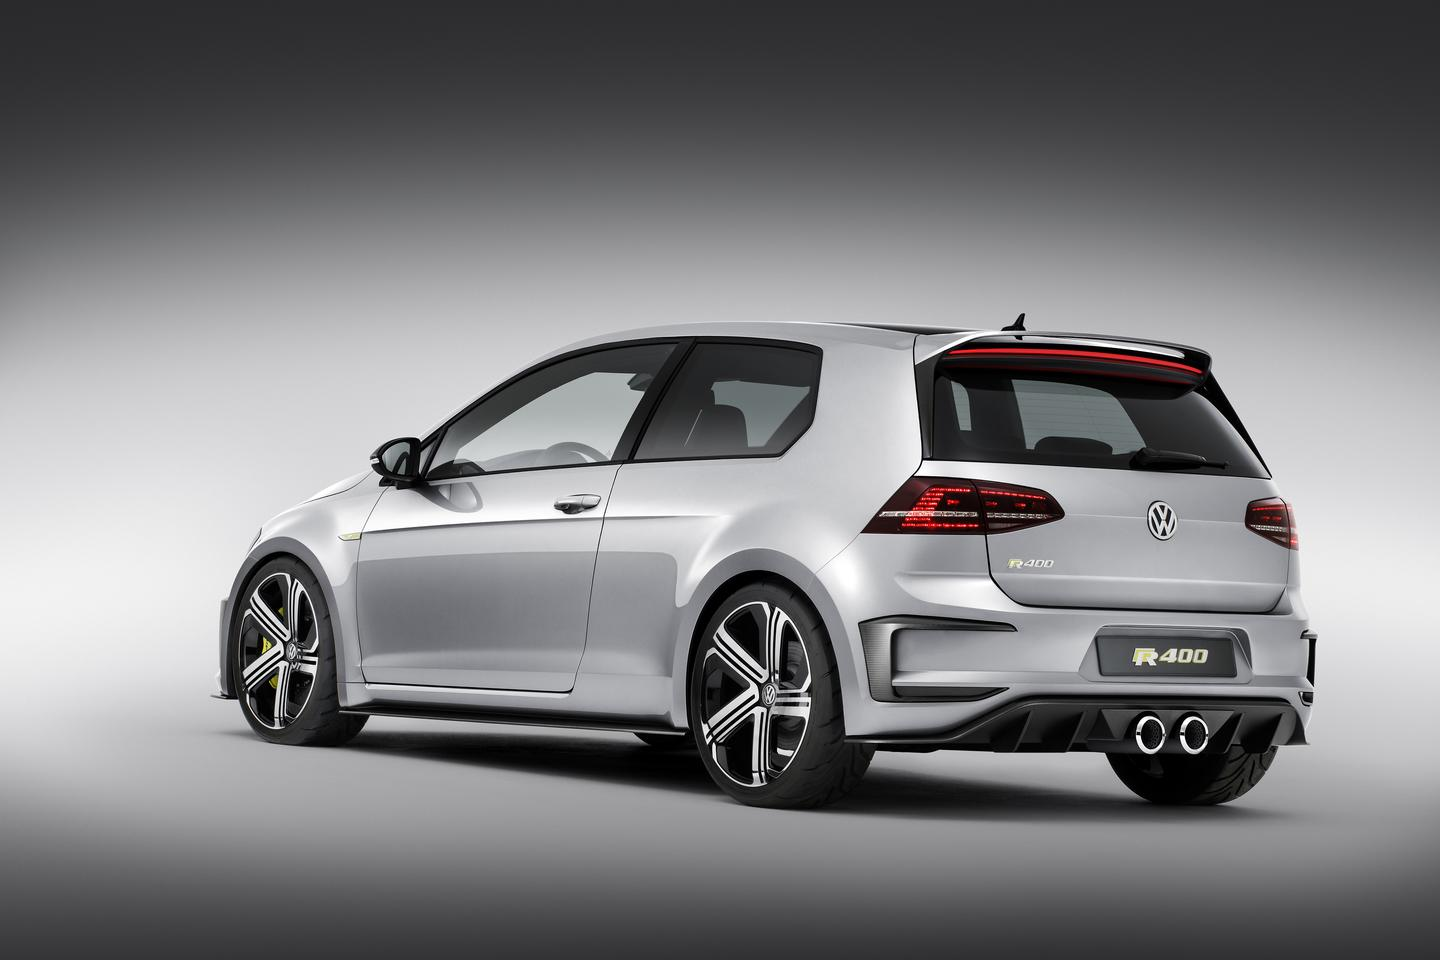 Using a 6-speed DSG gearbox, the Golf R 400 can reportedly hit 100 km/h (62 mph) in only 3.9 seconds, making it an entire second faster to the mark than the standard Golf R